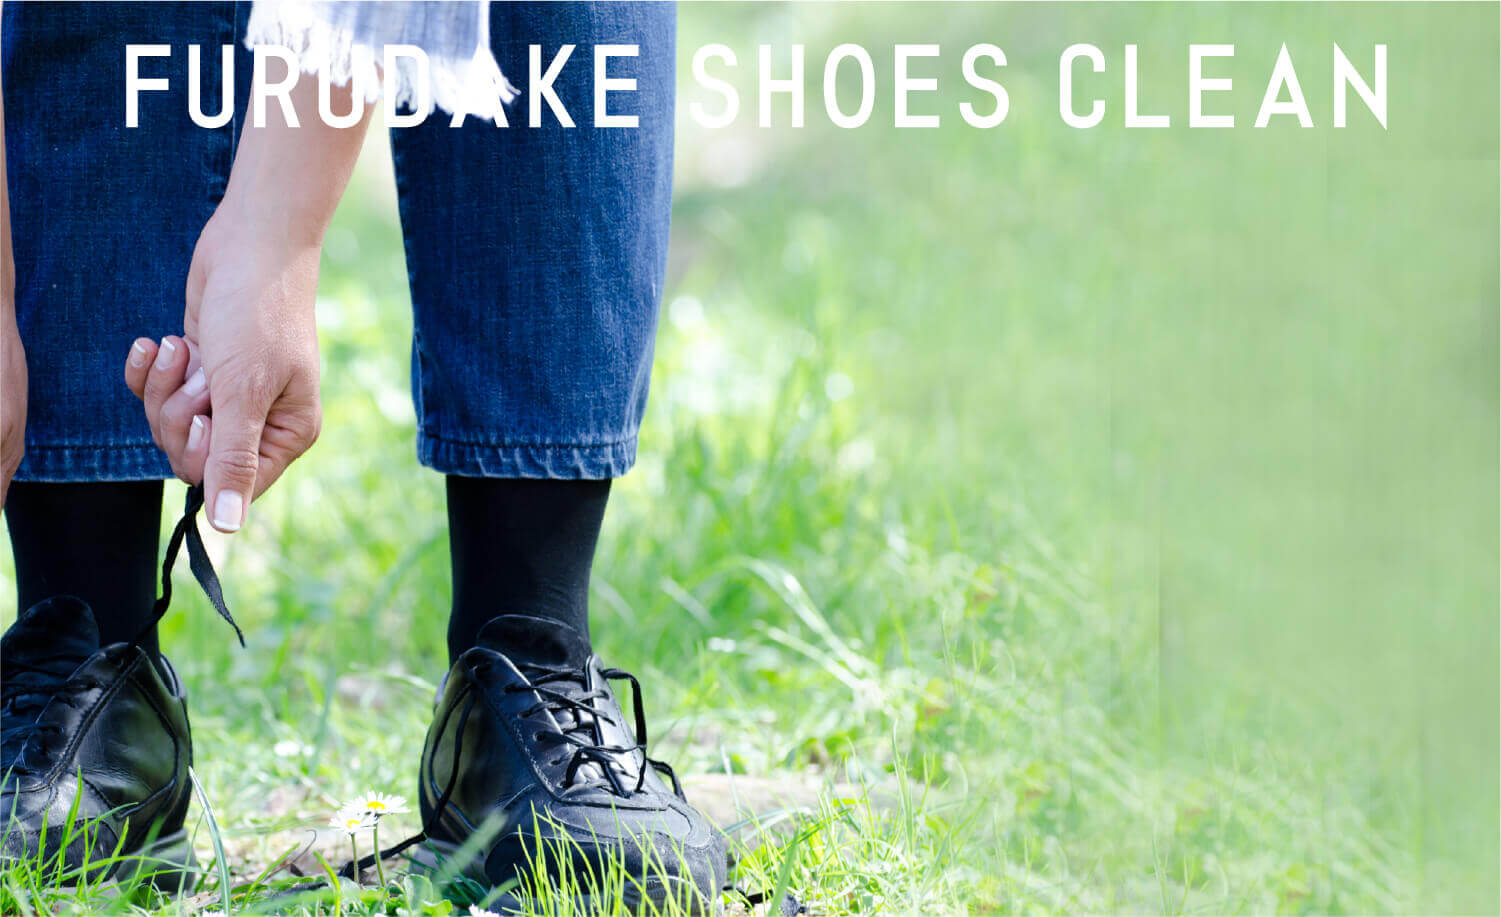 FURUDAKE SHOES CLEAN